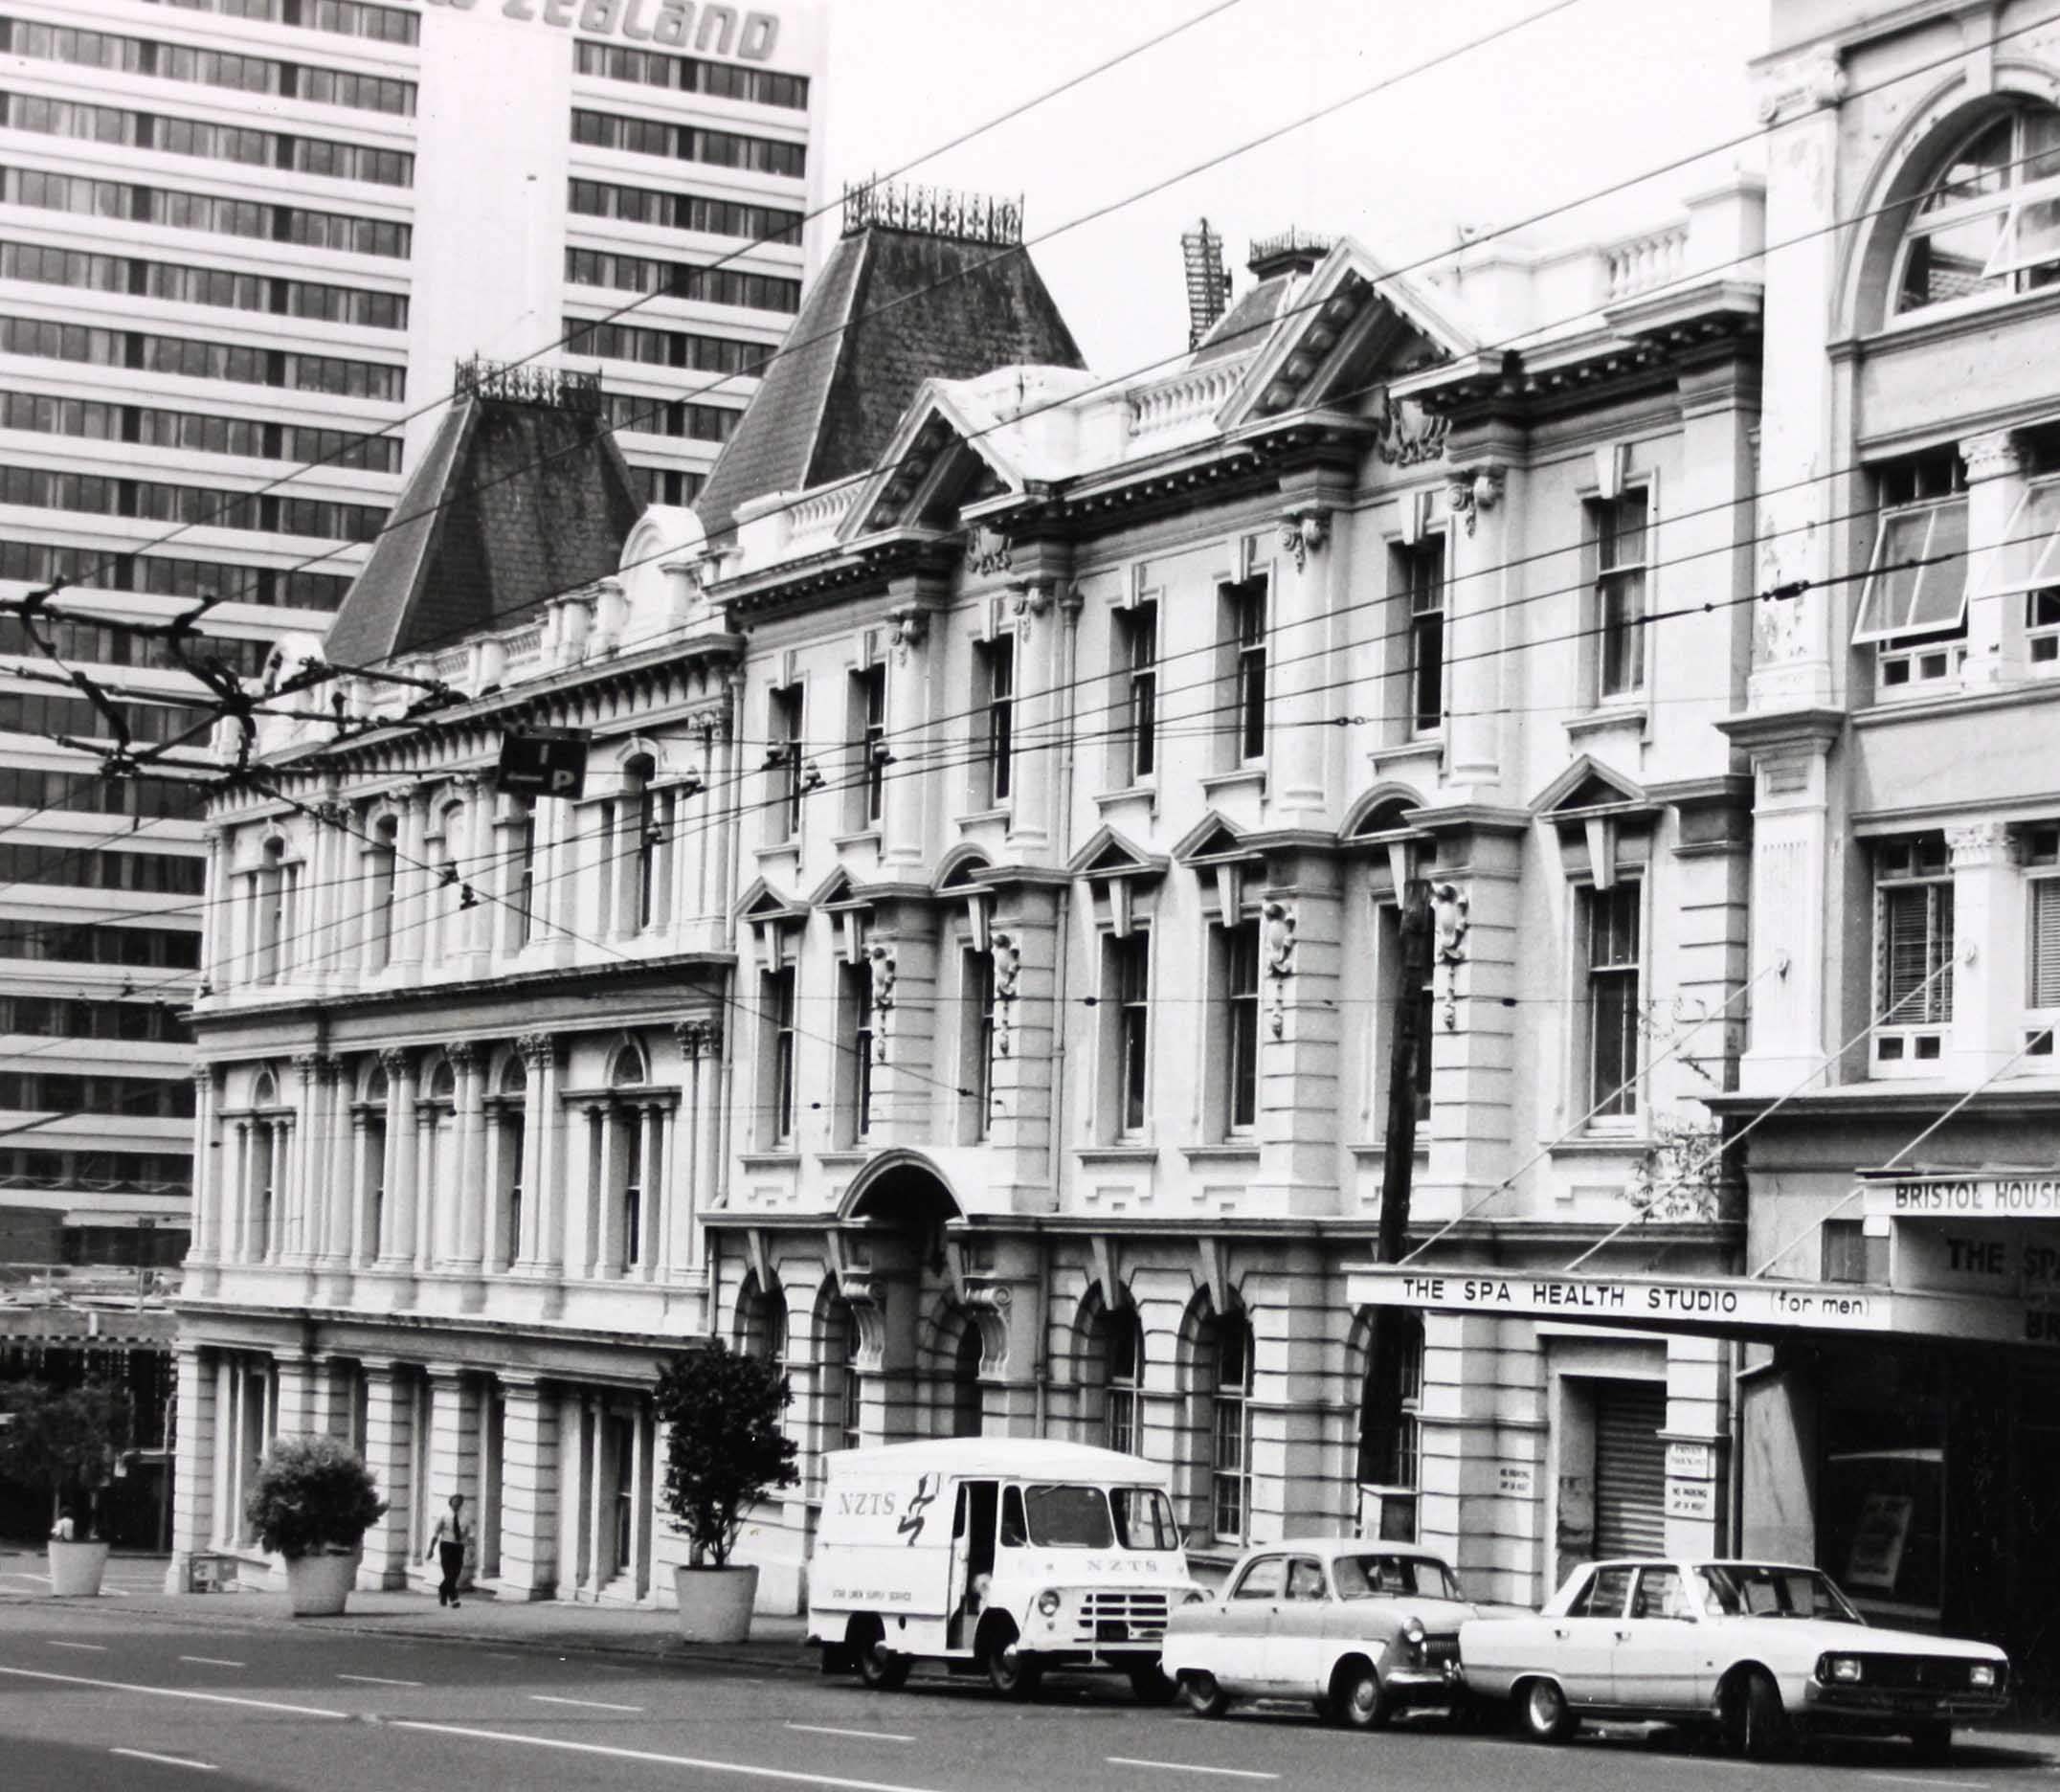 Black and white photo of a building from the street